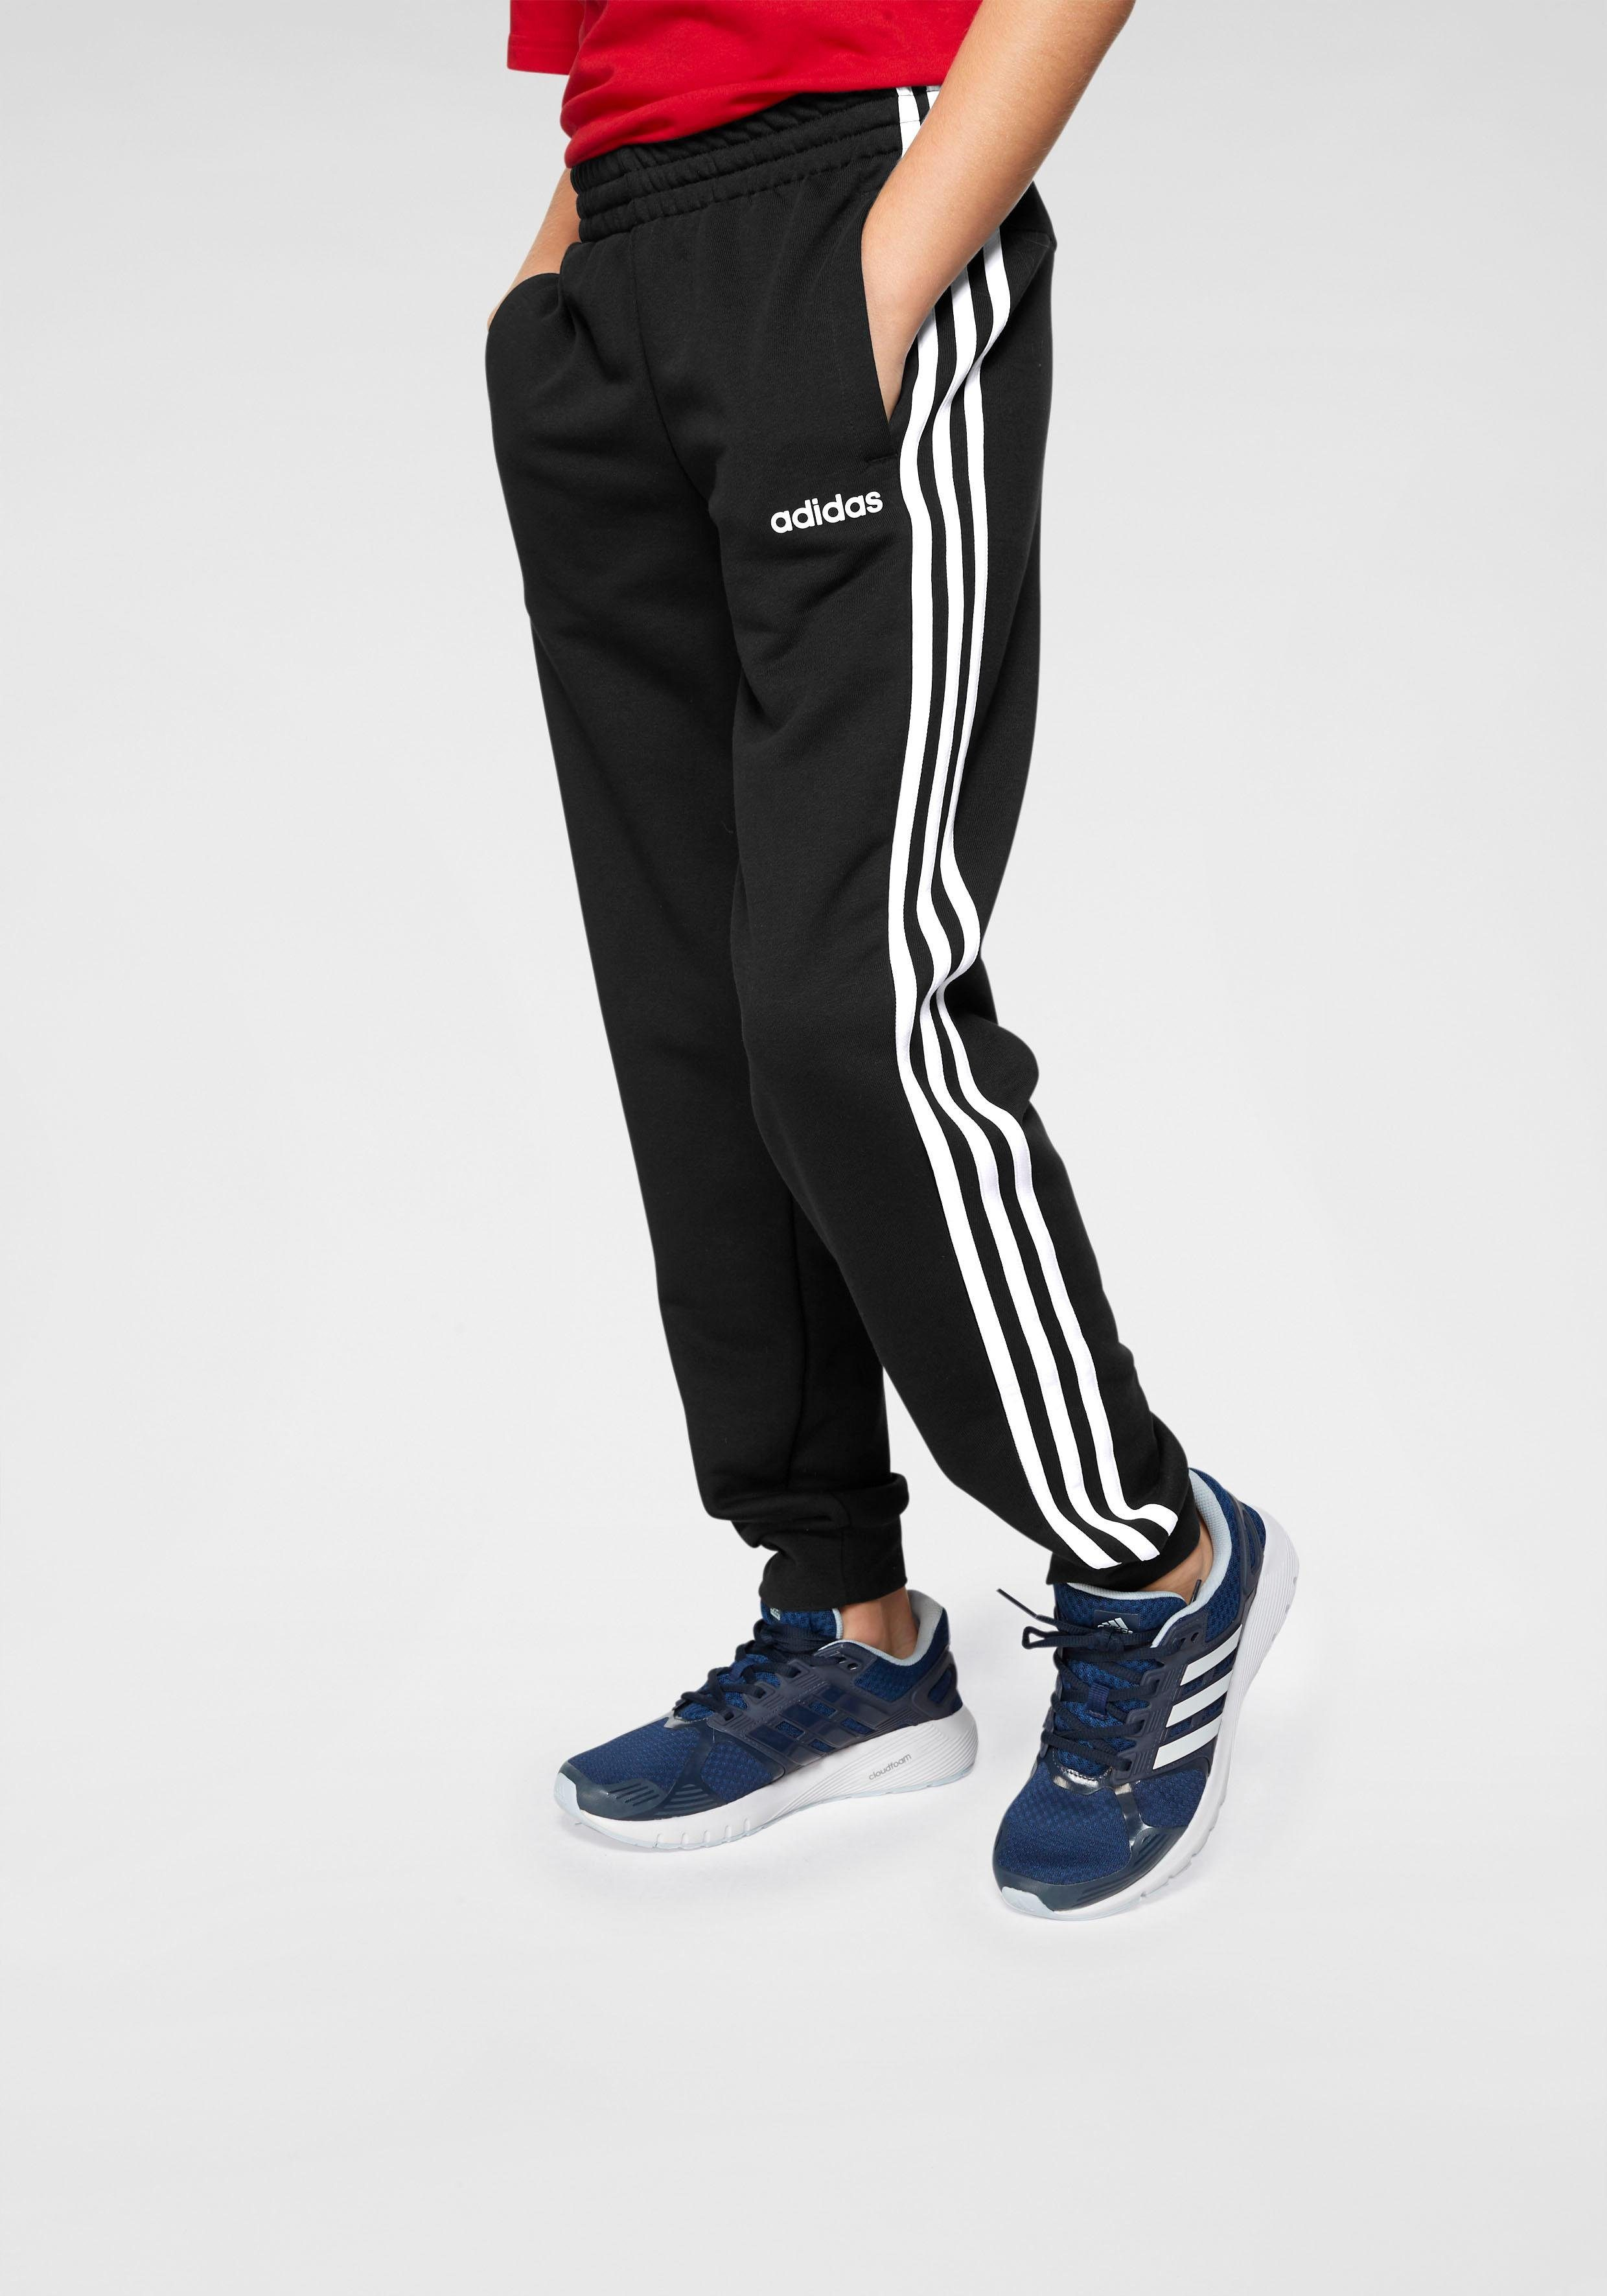 adidas Jogginghose »E 3 STRIPES PANT«, Innenliegende Kordel online kaufen | OTTO